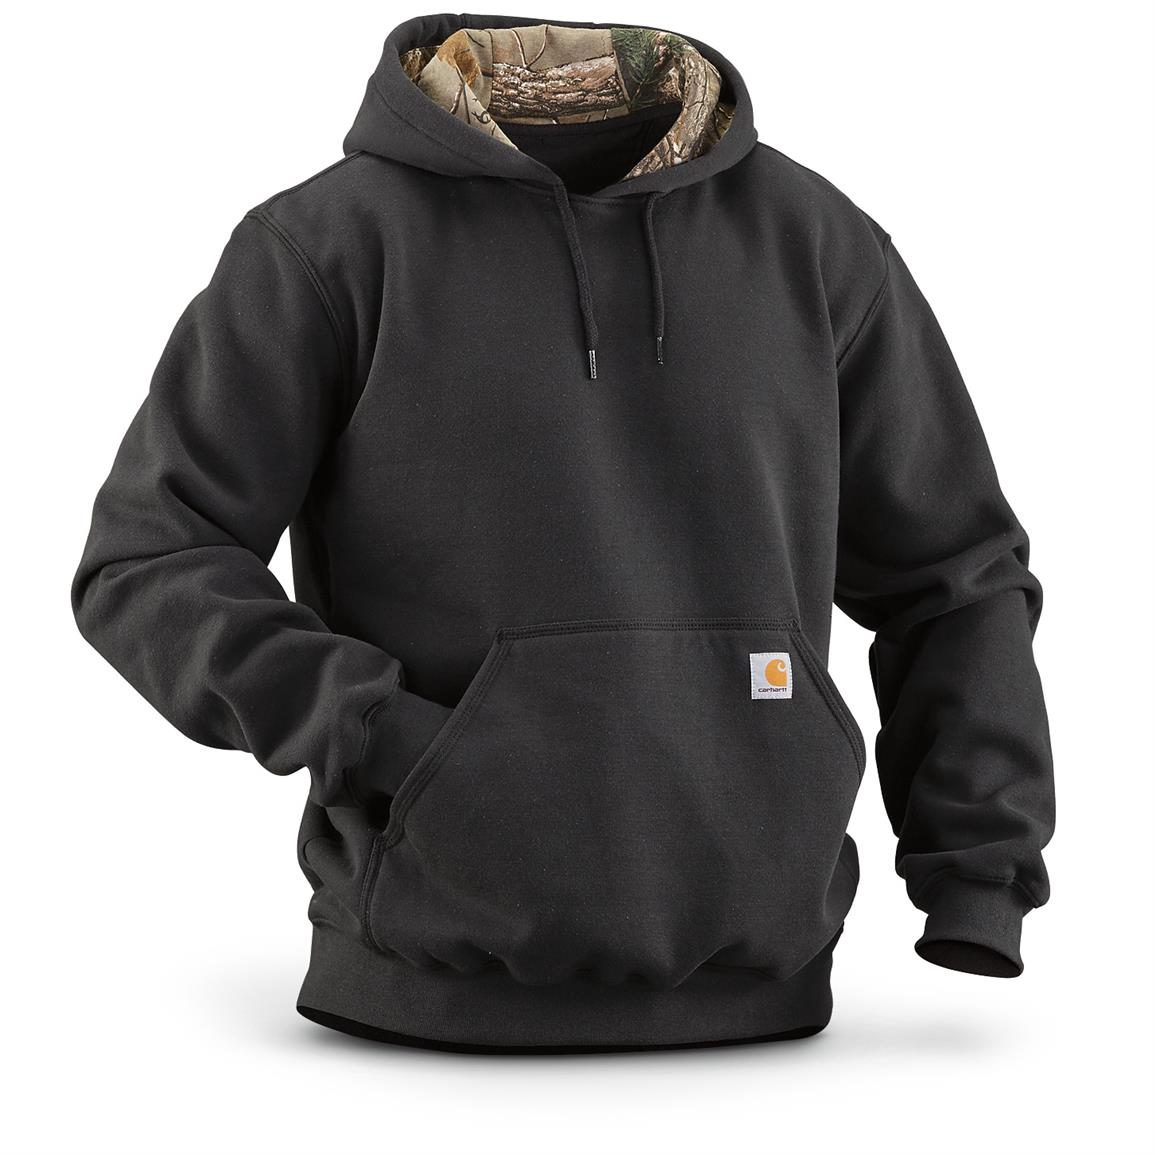 Carhartt Men's Houghton Camo Hoodie Sweatshirt, Black